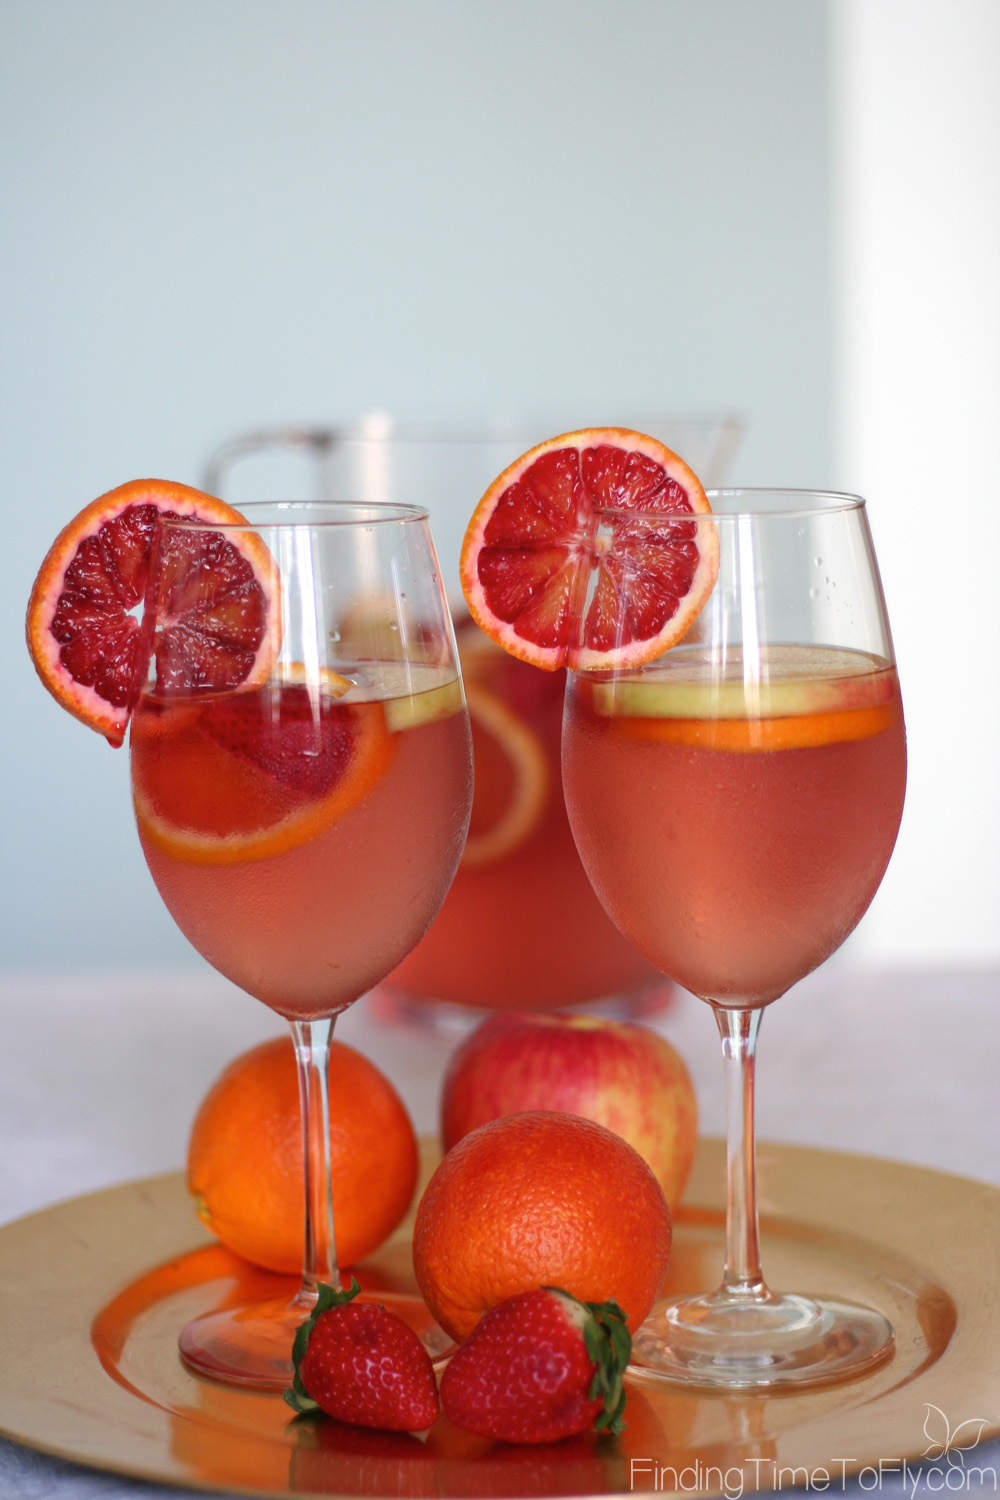 Blood orange, pink grapefruit, honey crisp apple, and strawberries in sangria! Yum! I love Sangria, and the fruits in this one sound delicious. Pink Moscato Sangria would be great for spring, Valentine's Day or any hot summer's day.